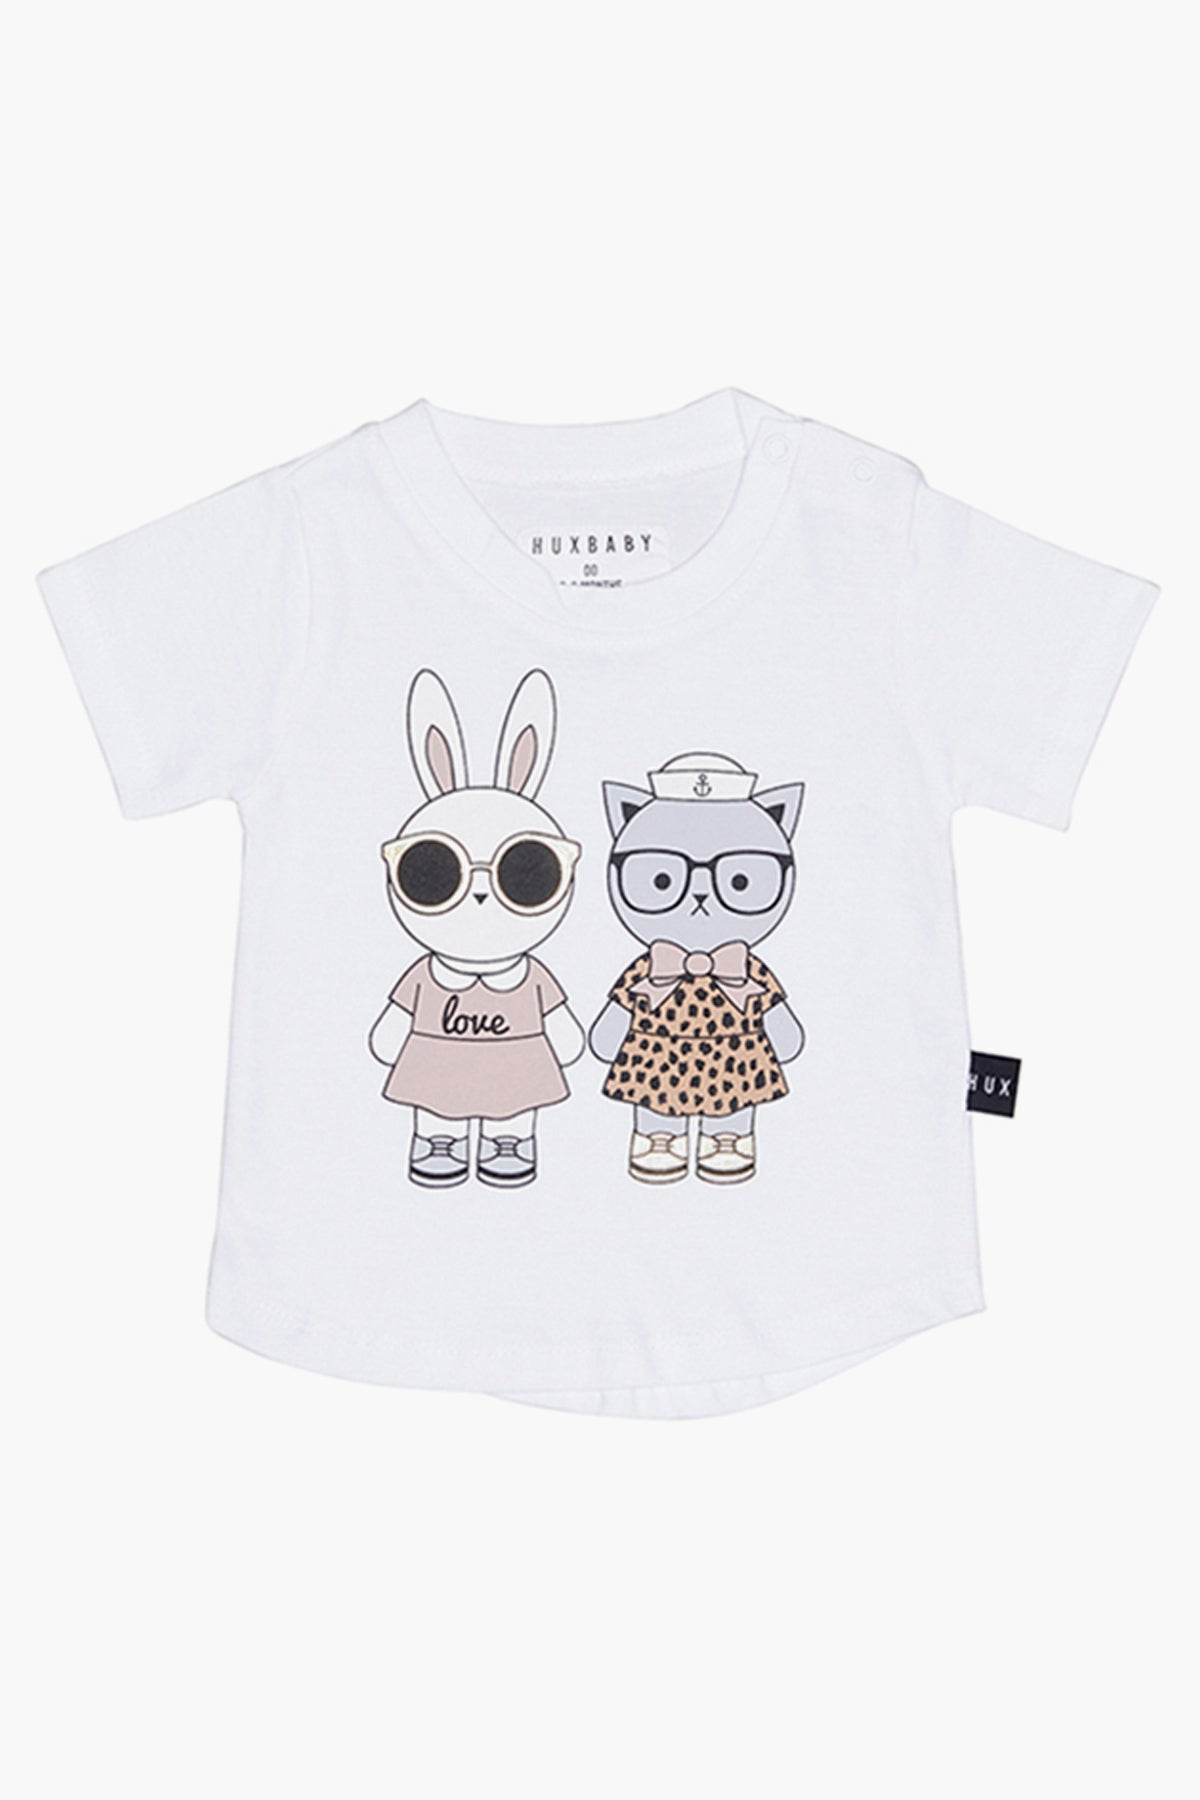 Huxbaby Friends T-Shirt